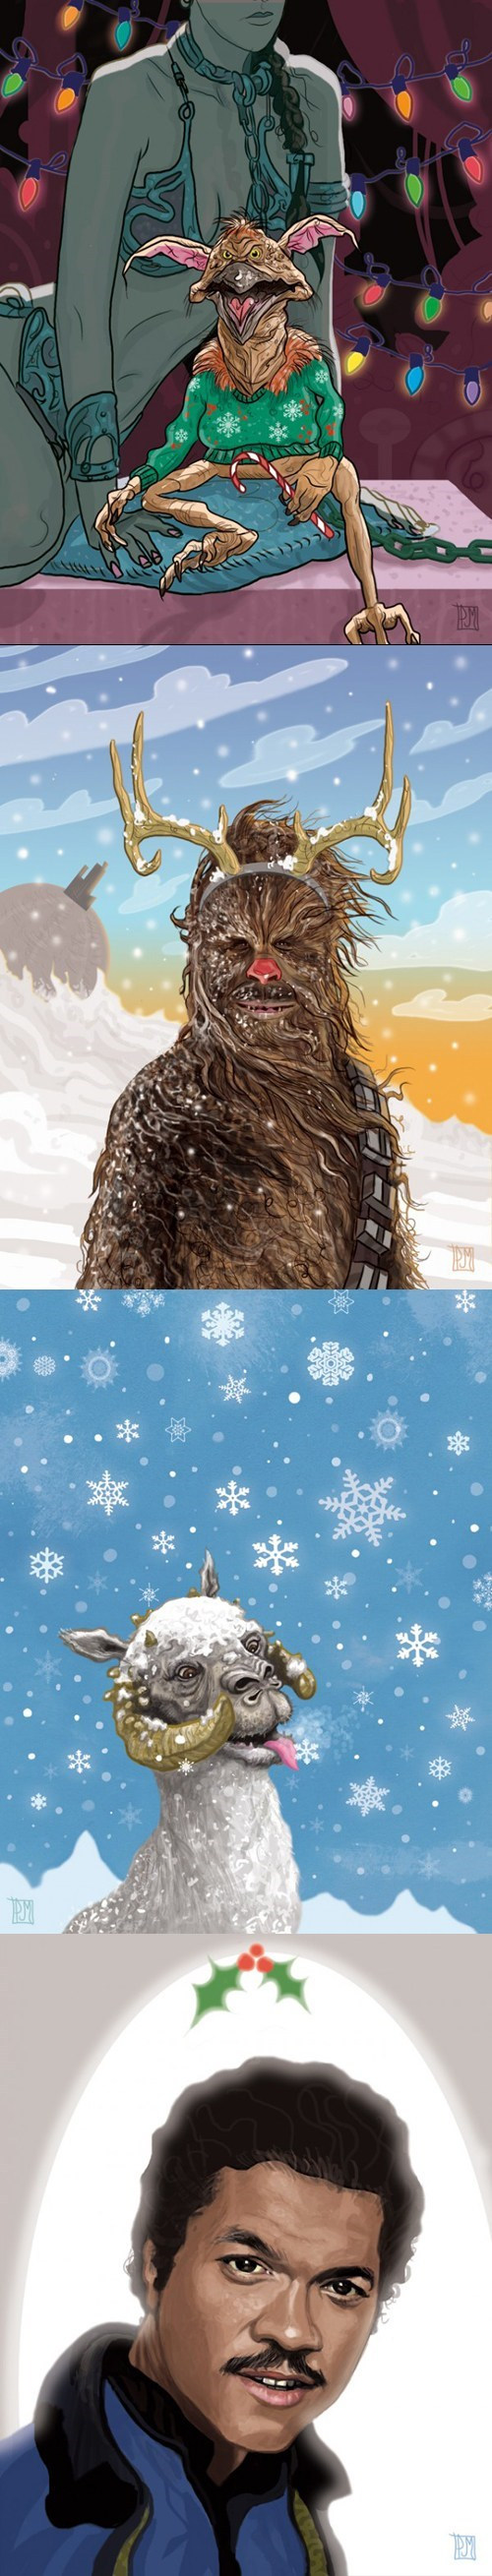 star wars,chewbacca,Fan Art,Lando Calrissian,christmas cards,Princess Leia